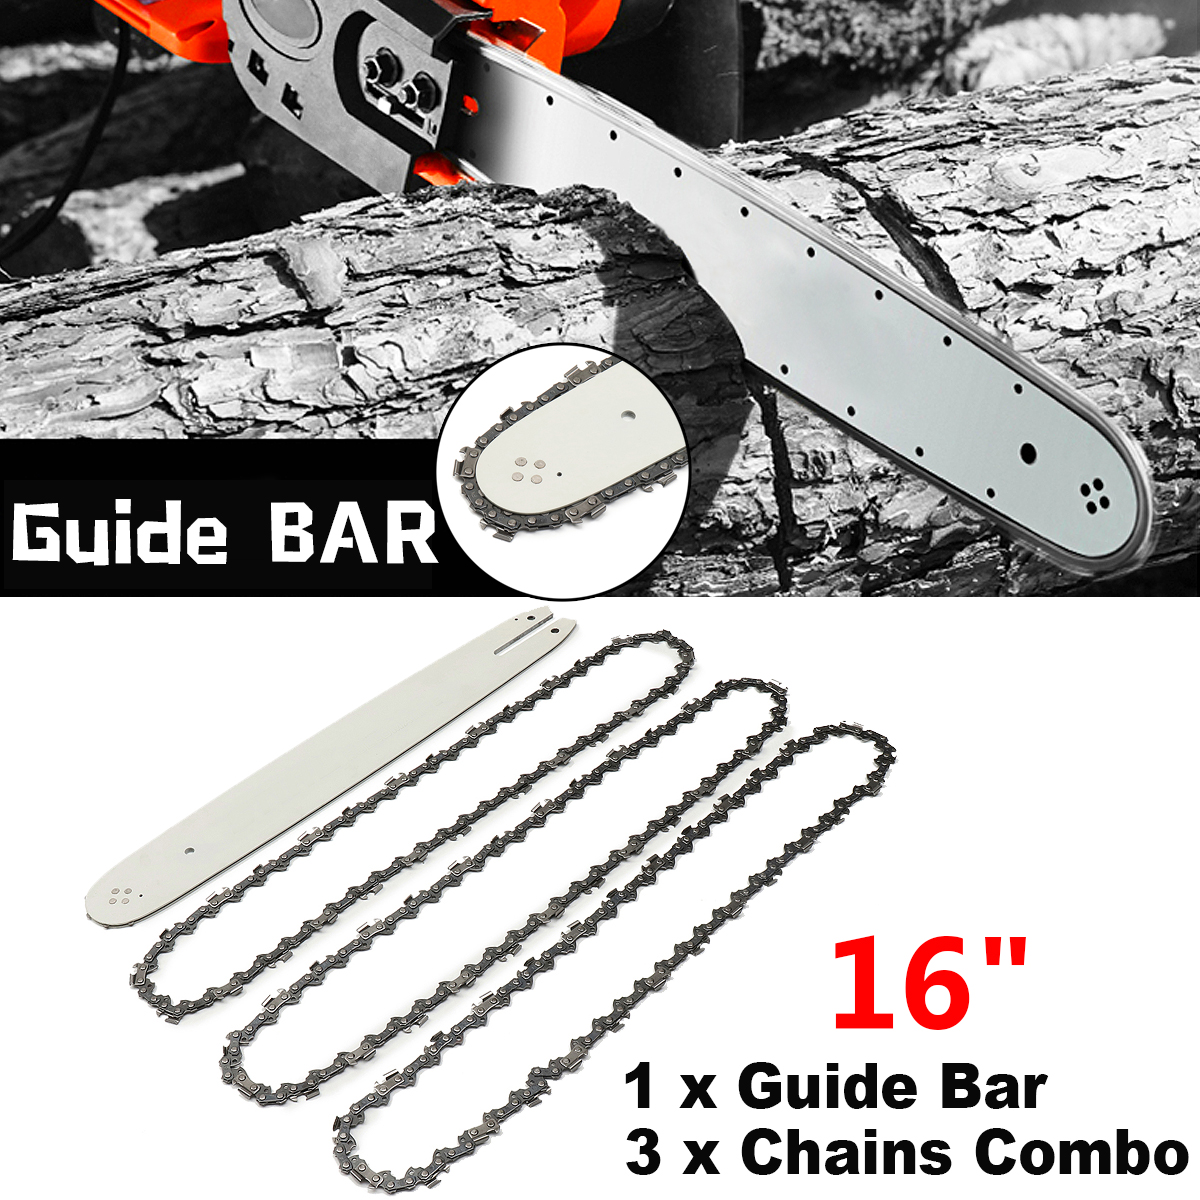 16 Inch Chain Saw Guide Bar with 3pcs Chains for STIHL 009 012 021 E180 MS180 MS190 MS25016 Inch Chain Saw Guide Bar with 3pcs Chains for STIHL 009 012 021 E180 MS180 MS190 MS250